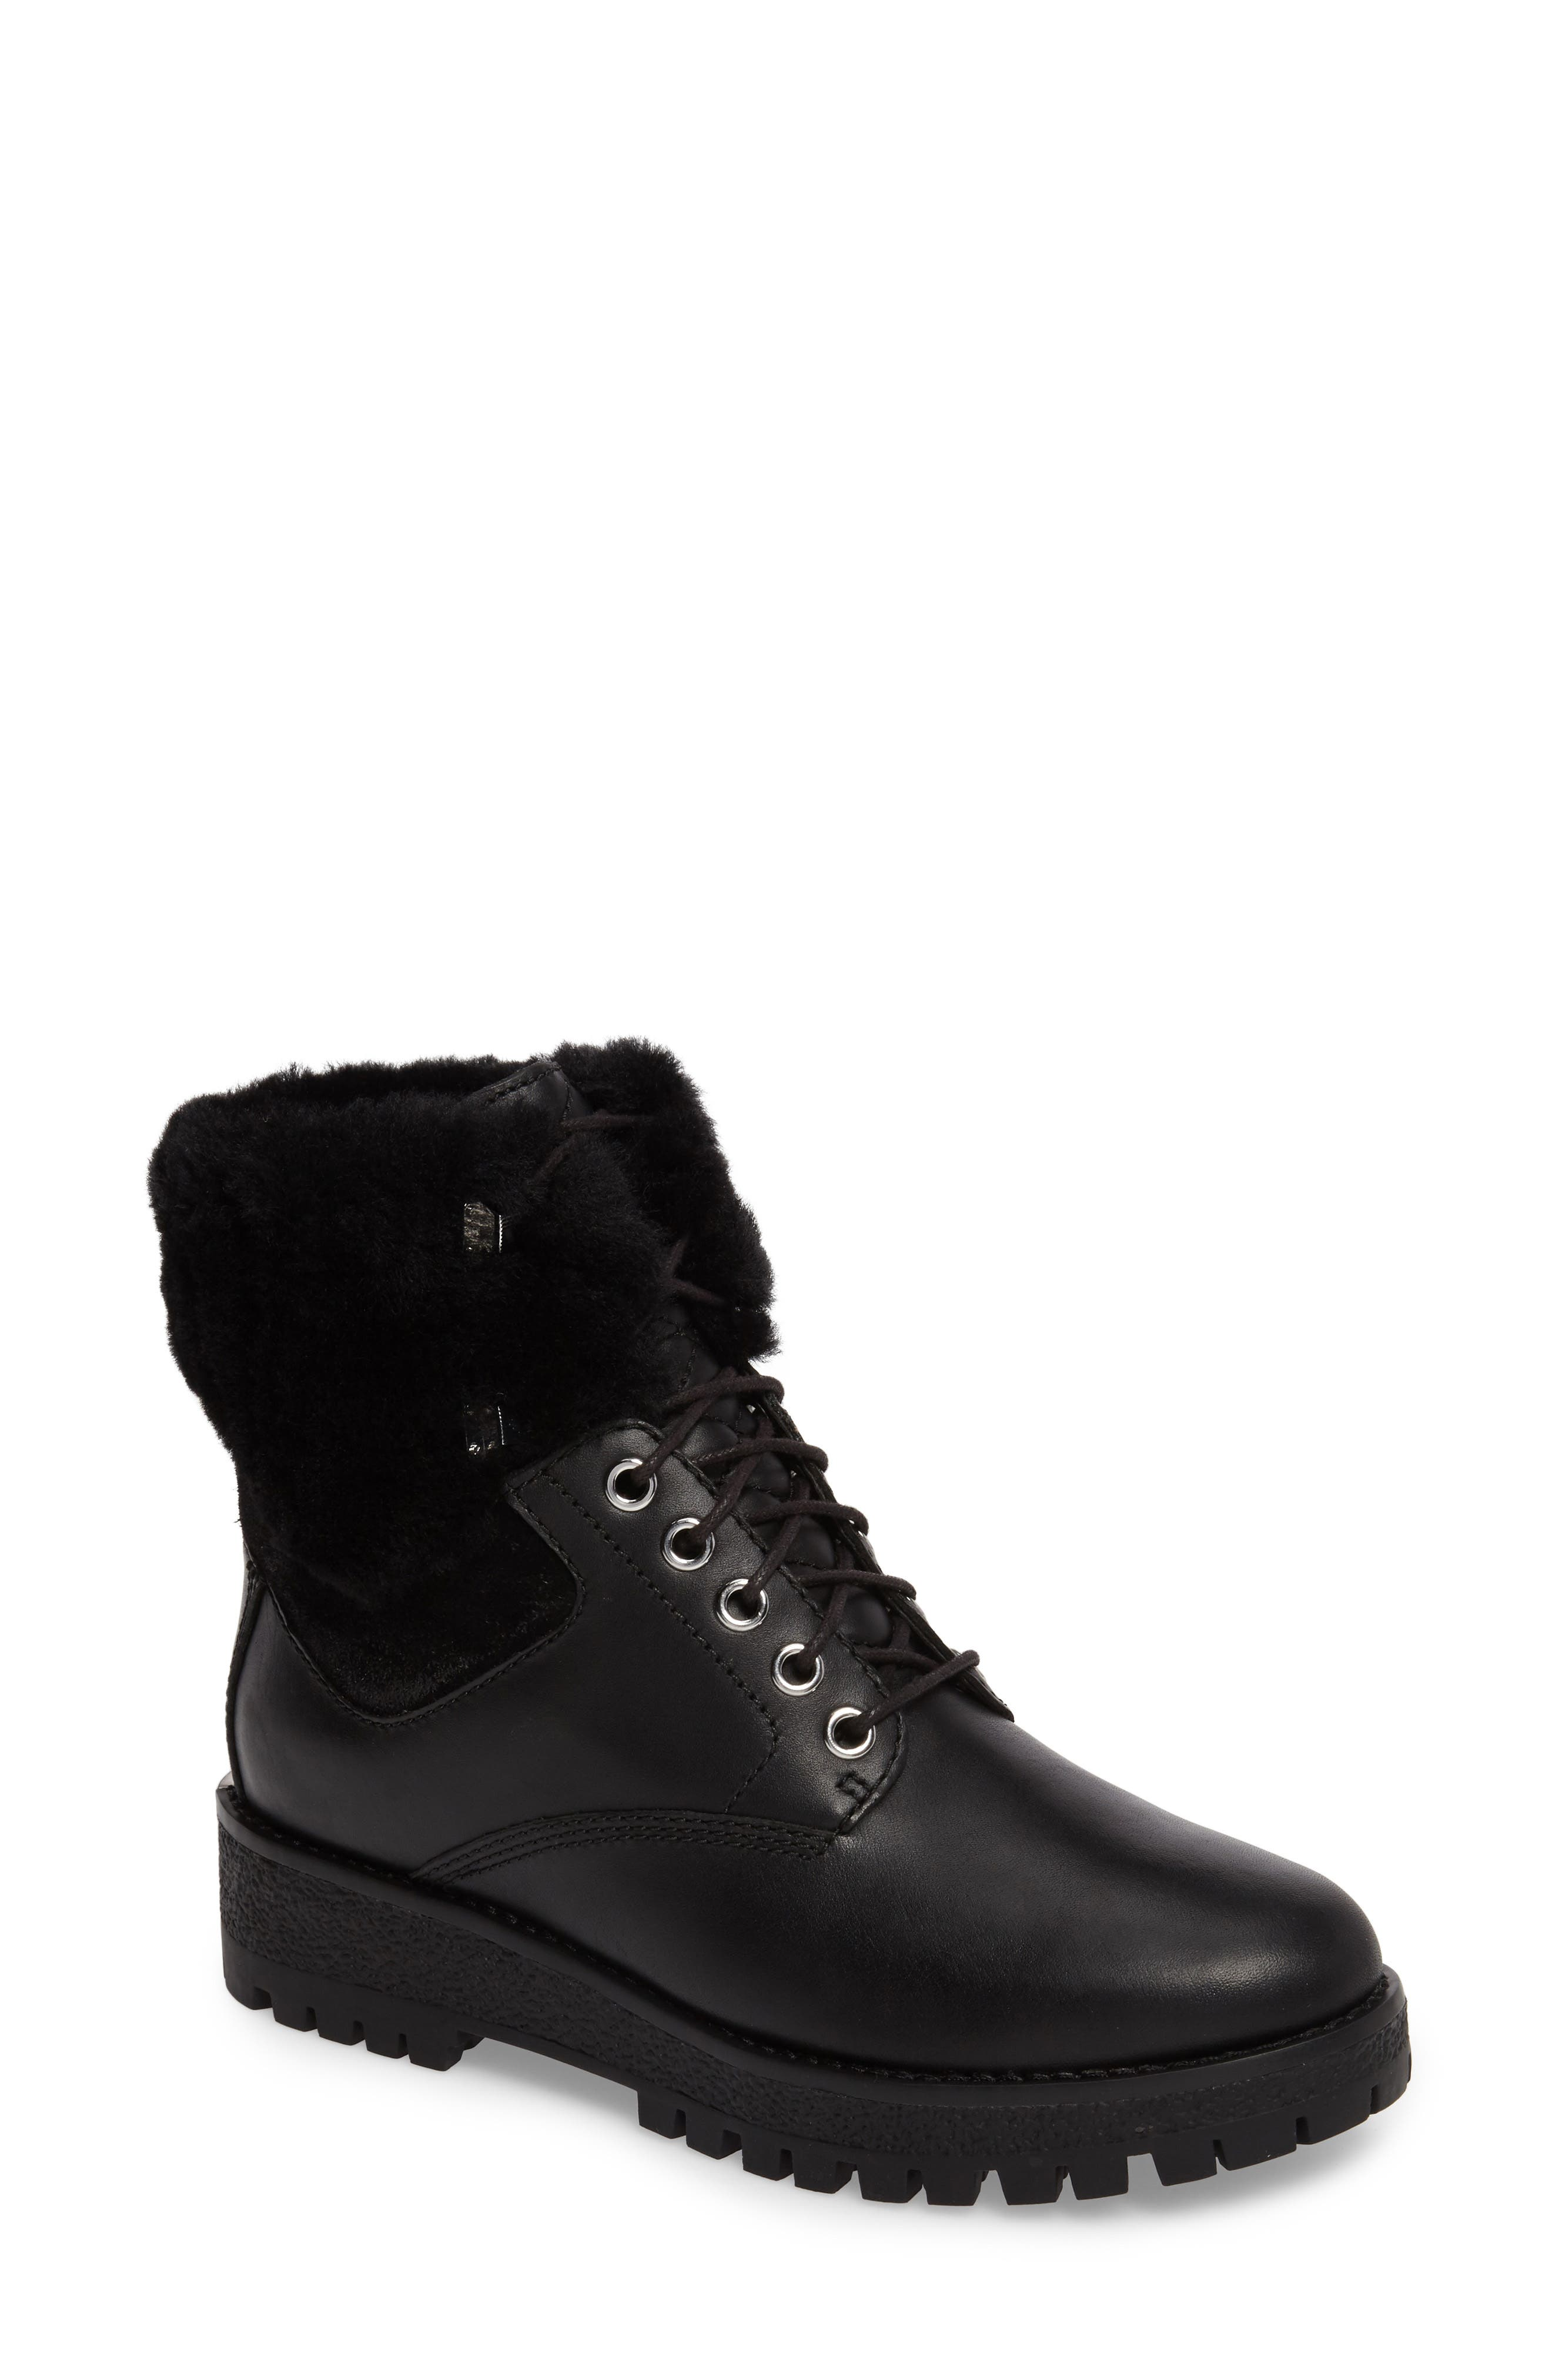 Main Image - MICHAEL Michael Kors Teddy Water Resistant Boot with Genuine Shearling Trim (Women)